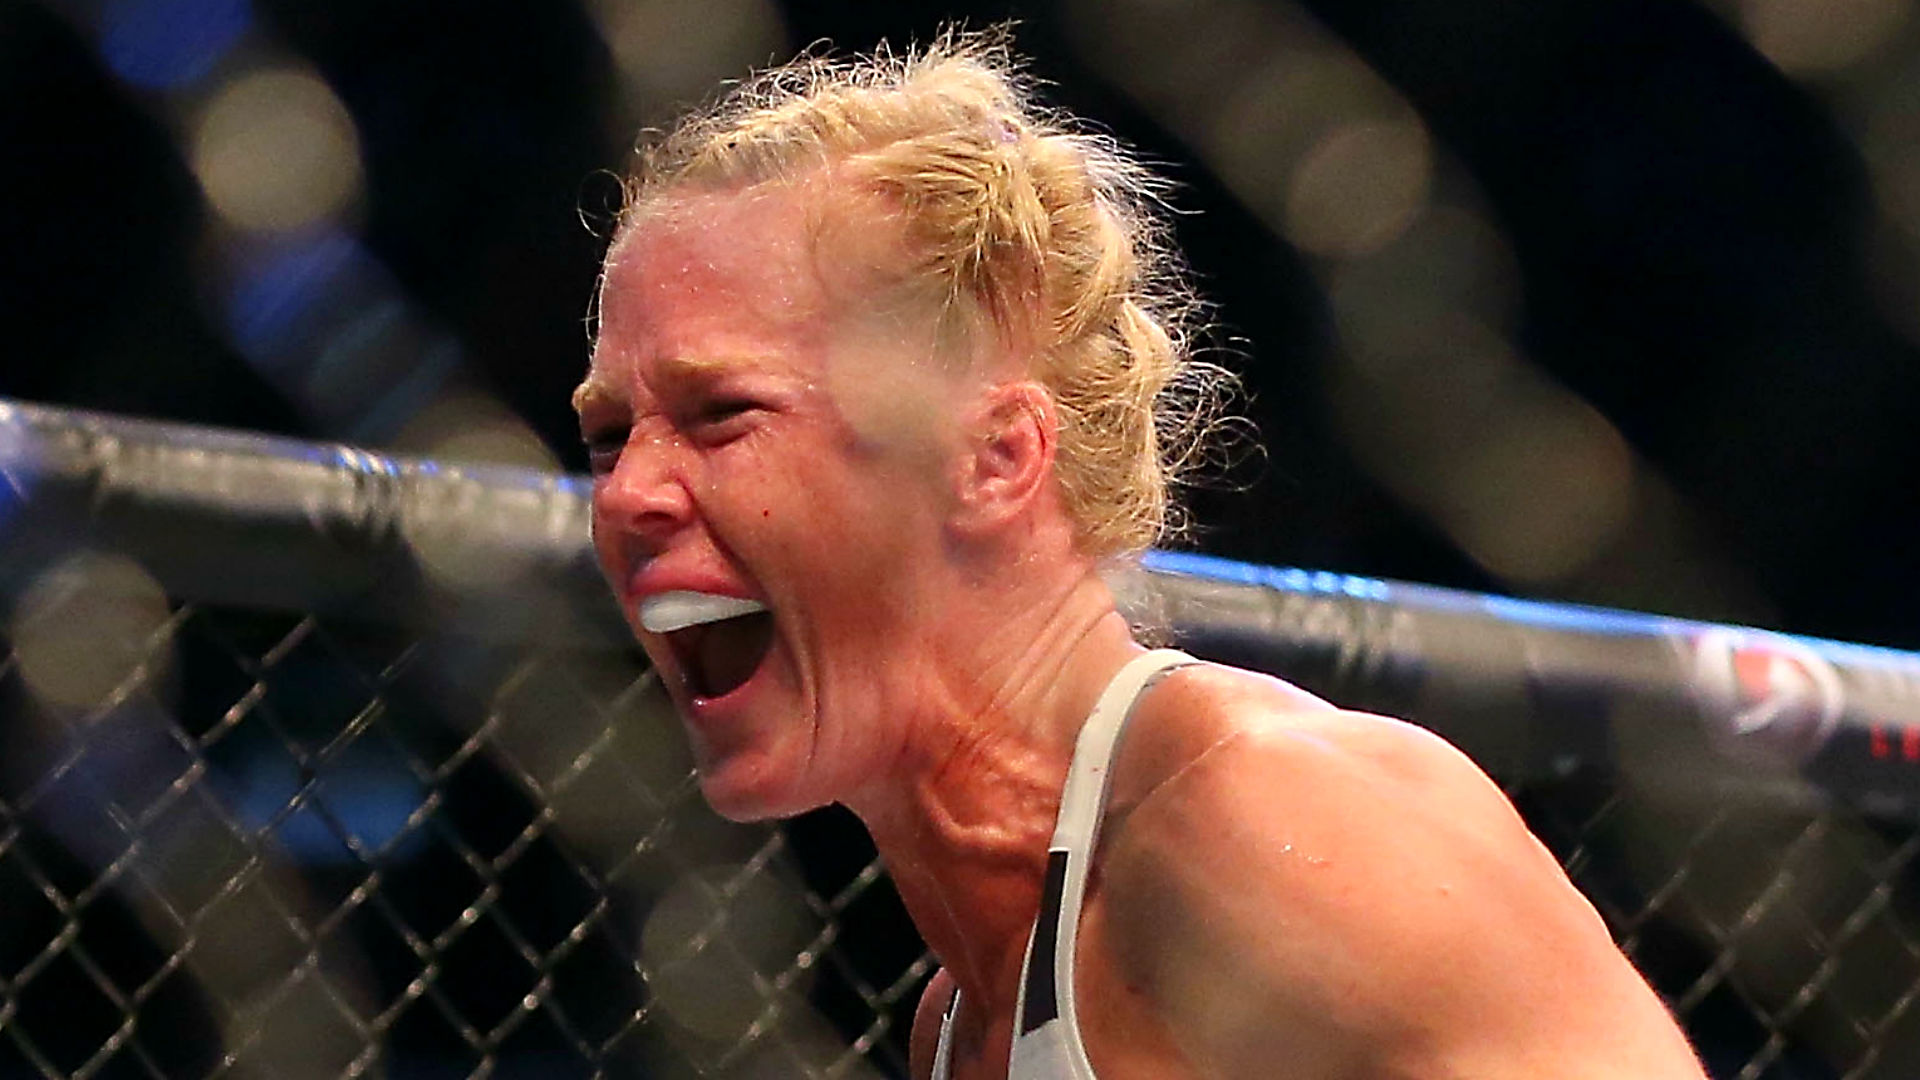 Holly holm odds sportsbetting eurovision 2021 betting forum